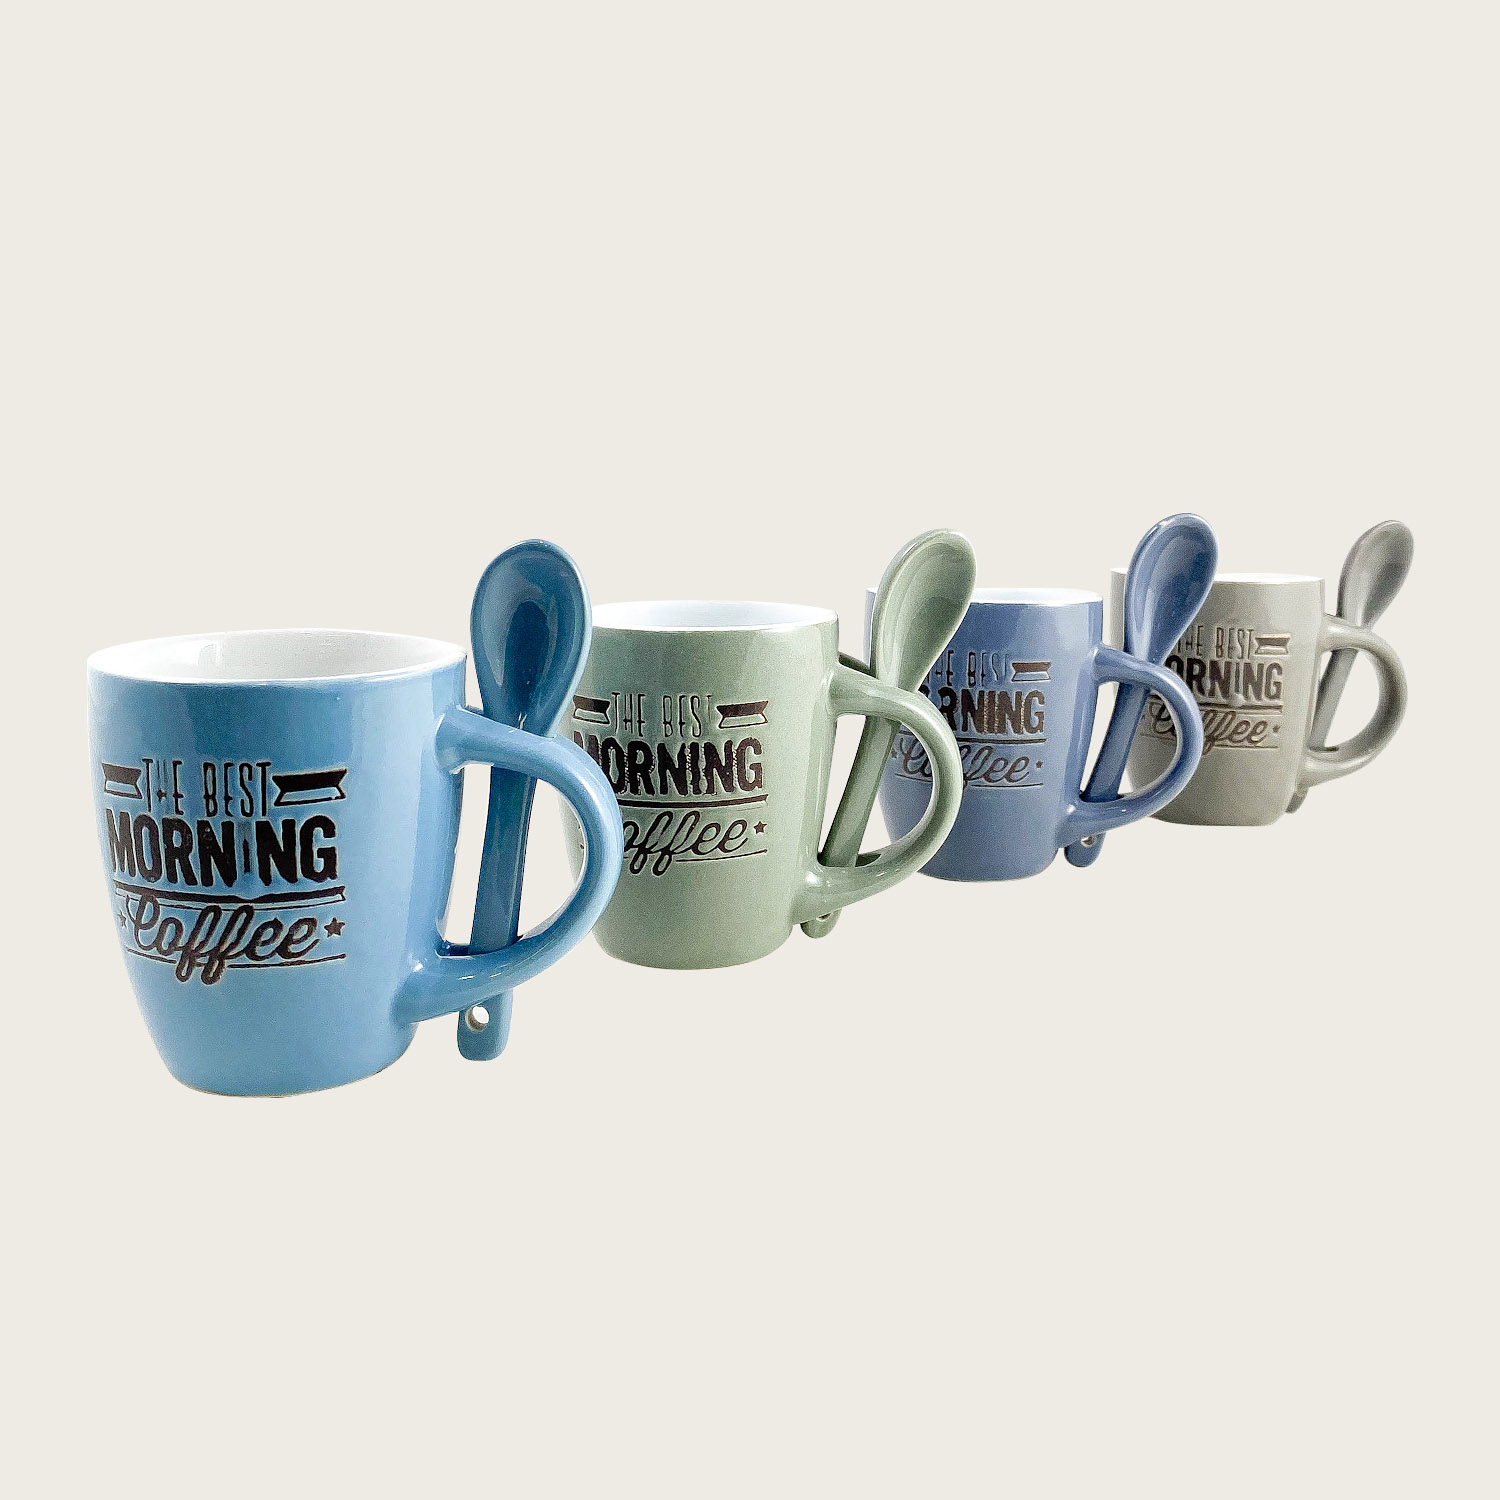 Set 4 tazzine caffe' con cucchiaino ceramica - the best morning coffee